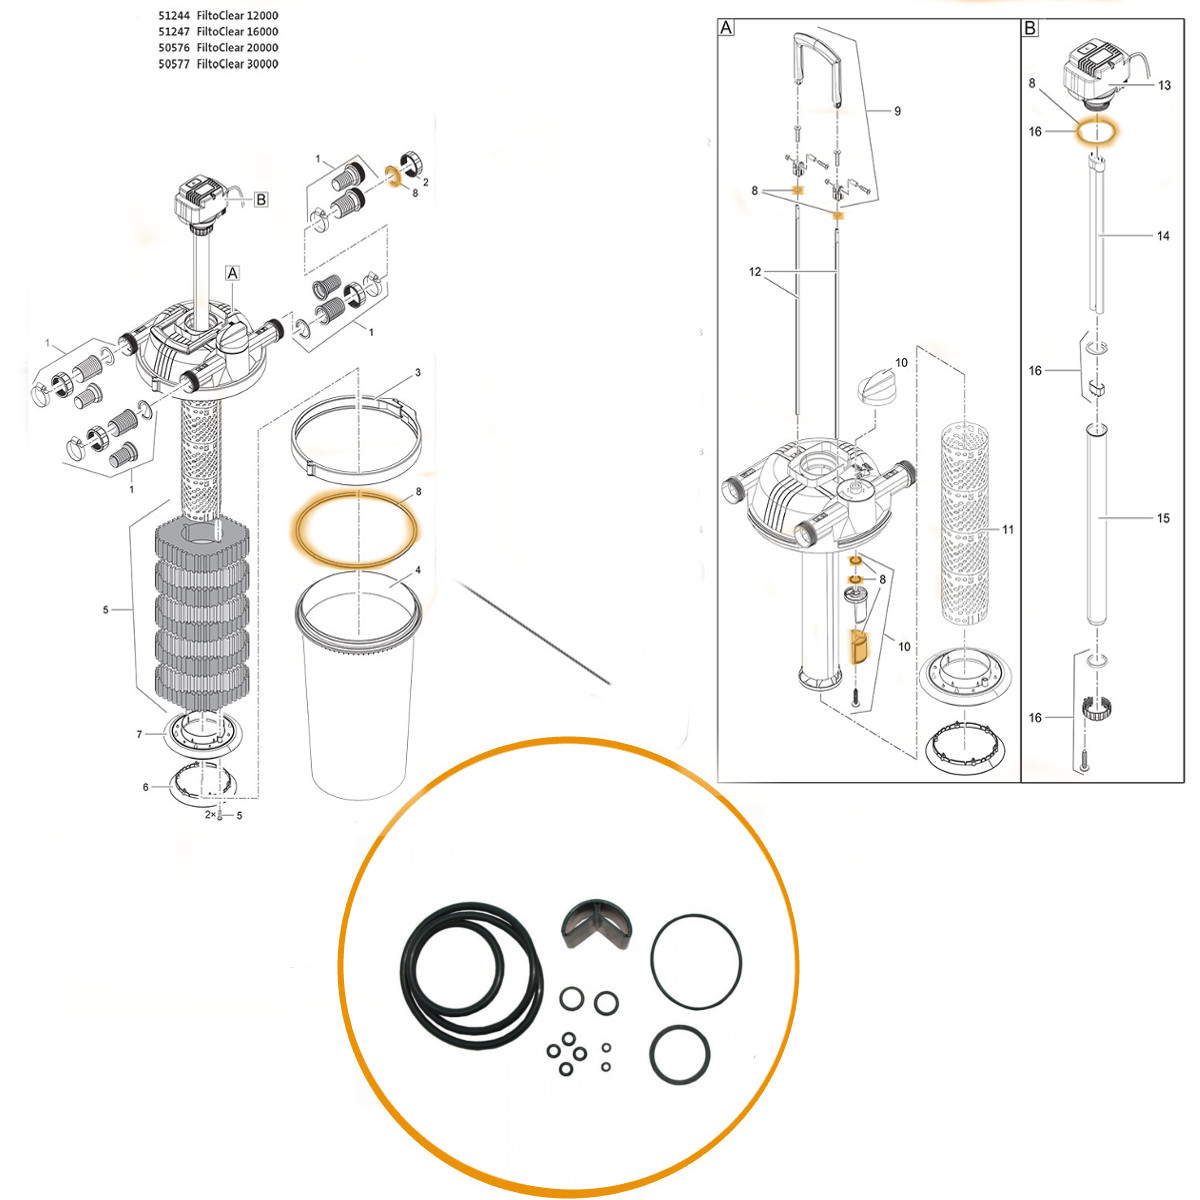 Genuine Oase Replacement Gasket Filtoclear